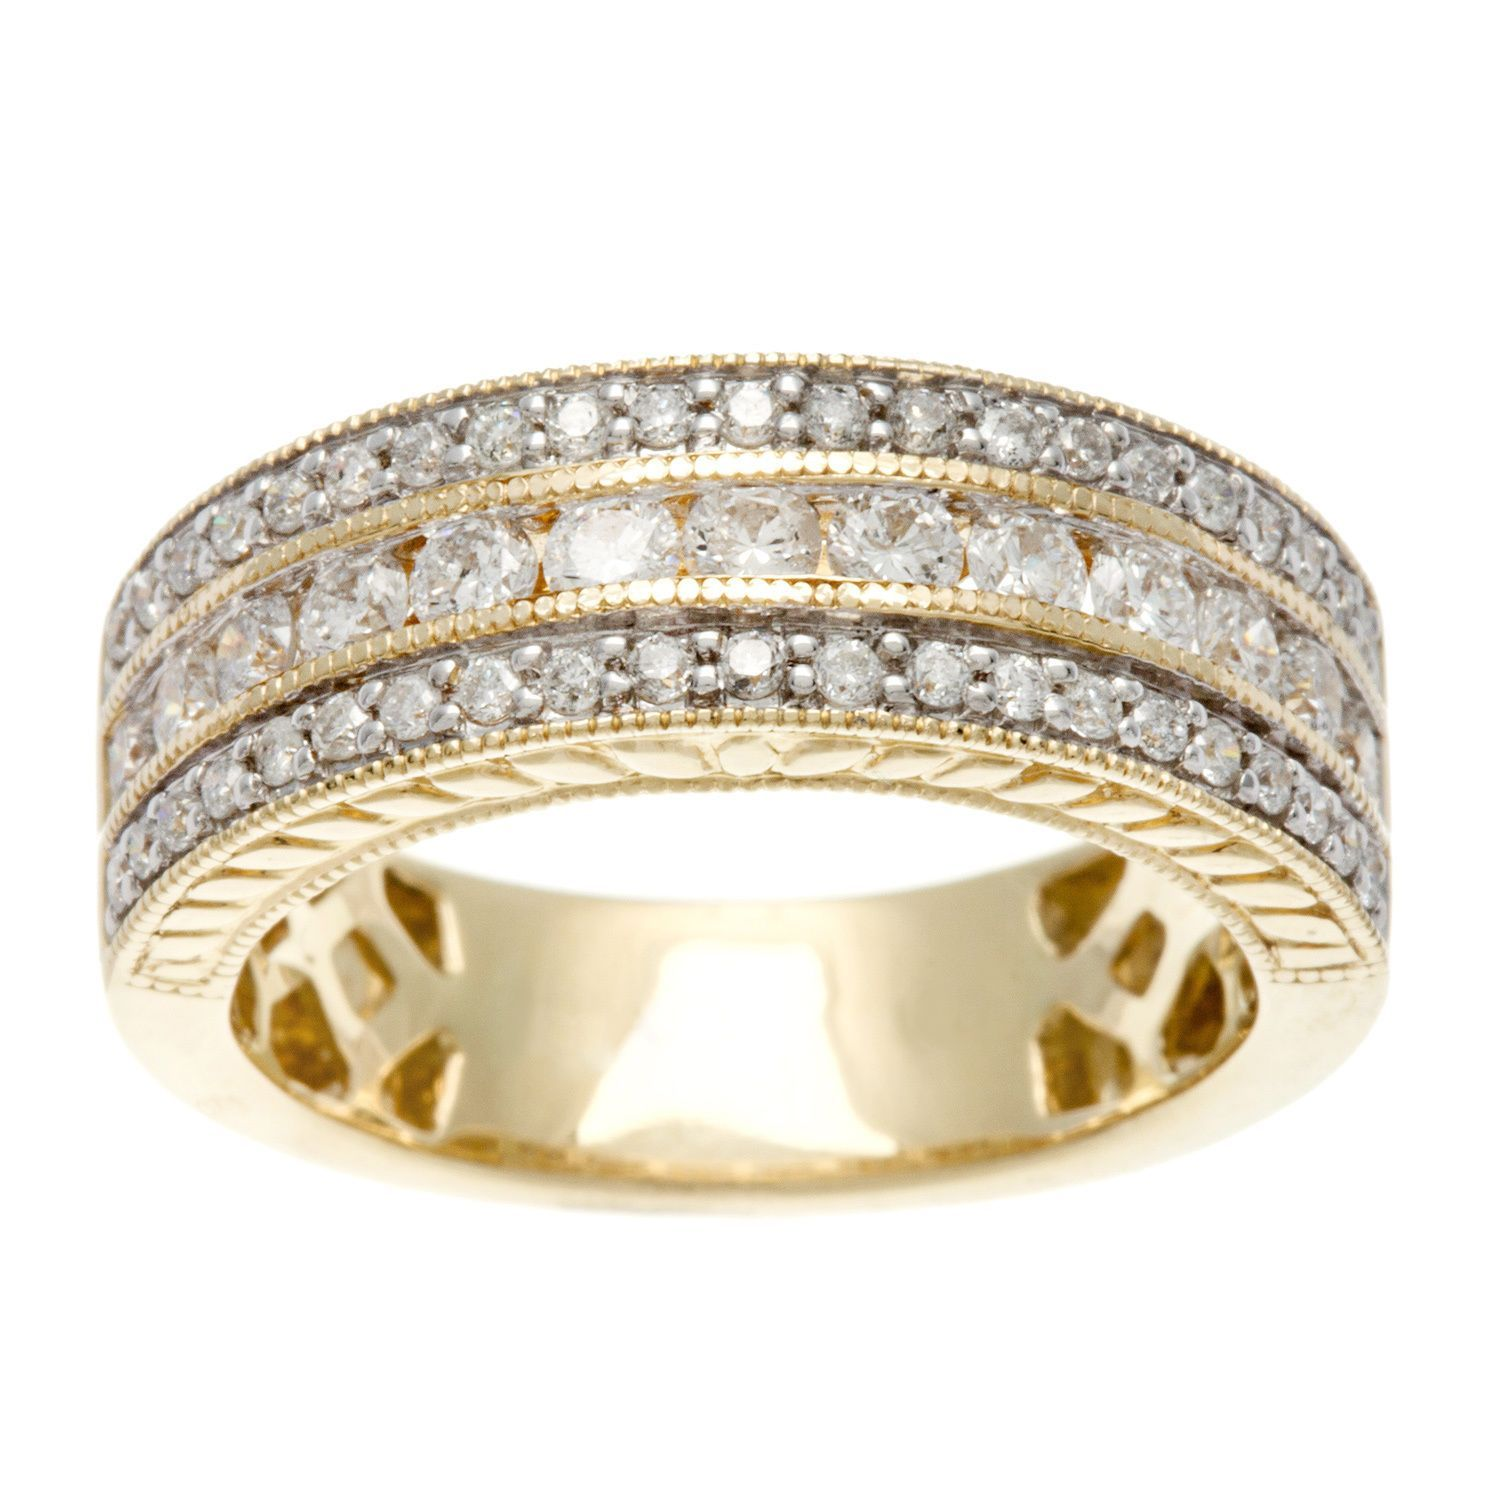 bands gallery bicego jewelry multirow row product yellow five normal goa ring marco multi diamond lyst white gold